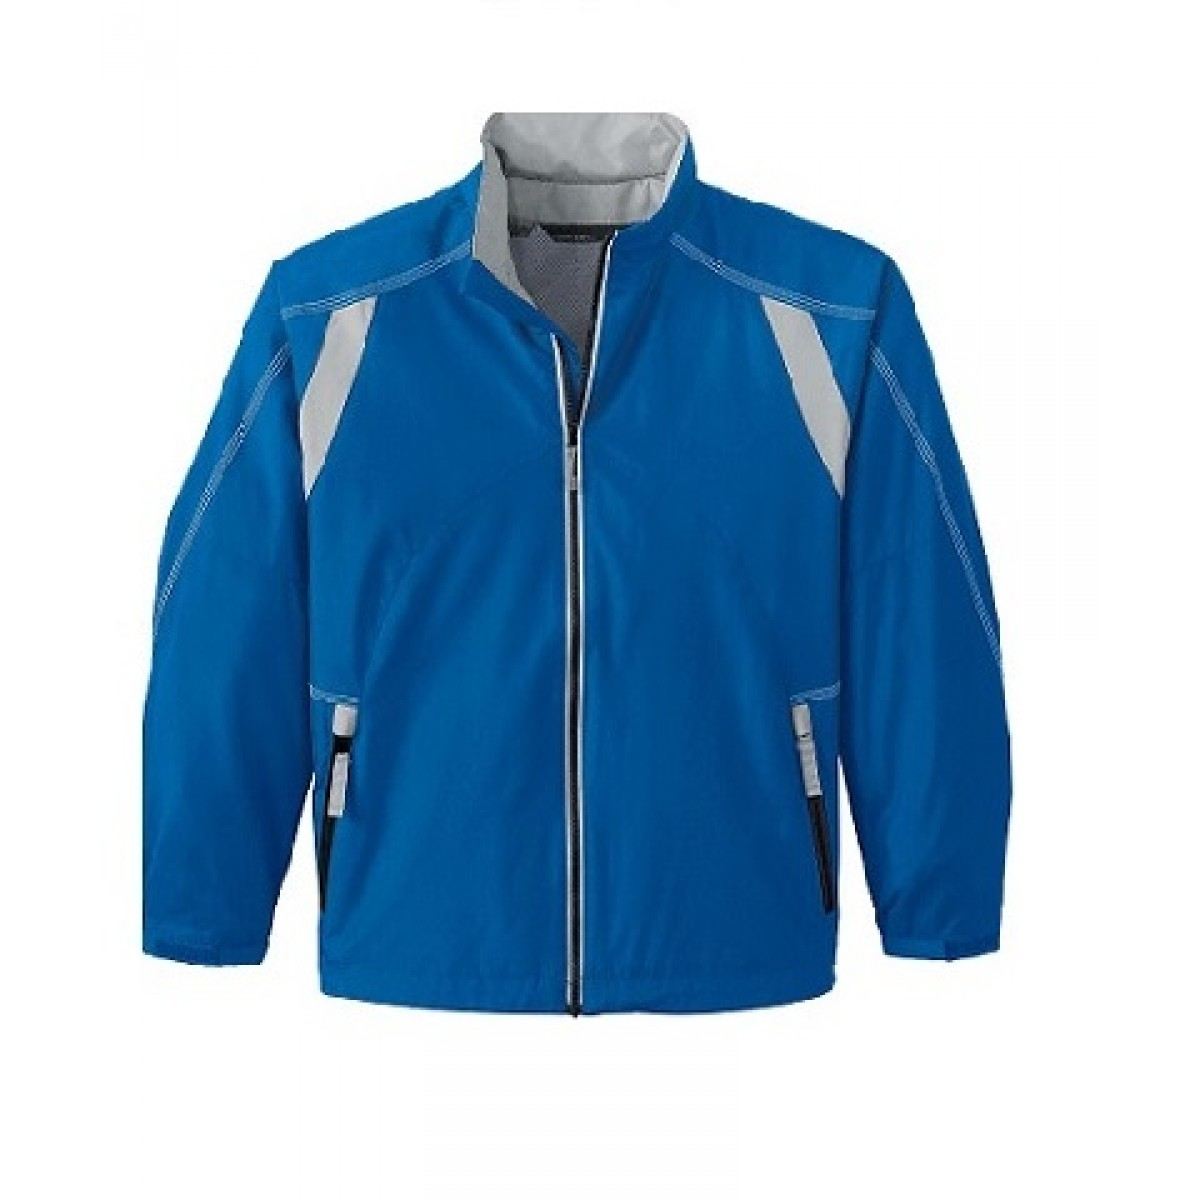 Embroidered Youth Lightweight Color-Block Jacket-Blue-YL